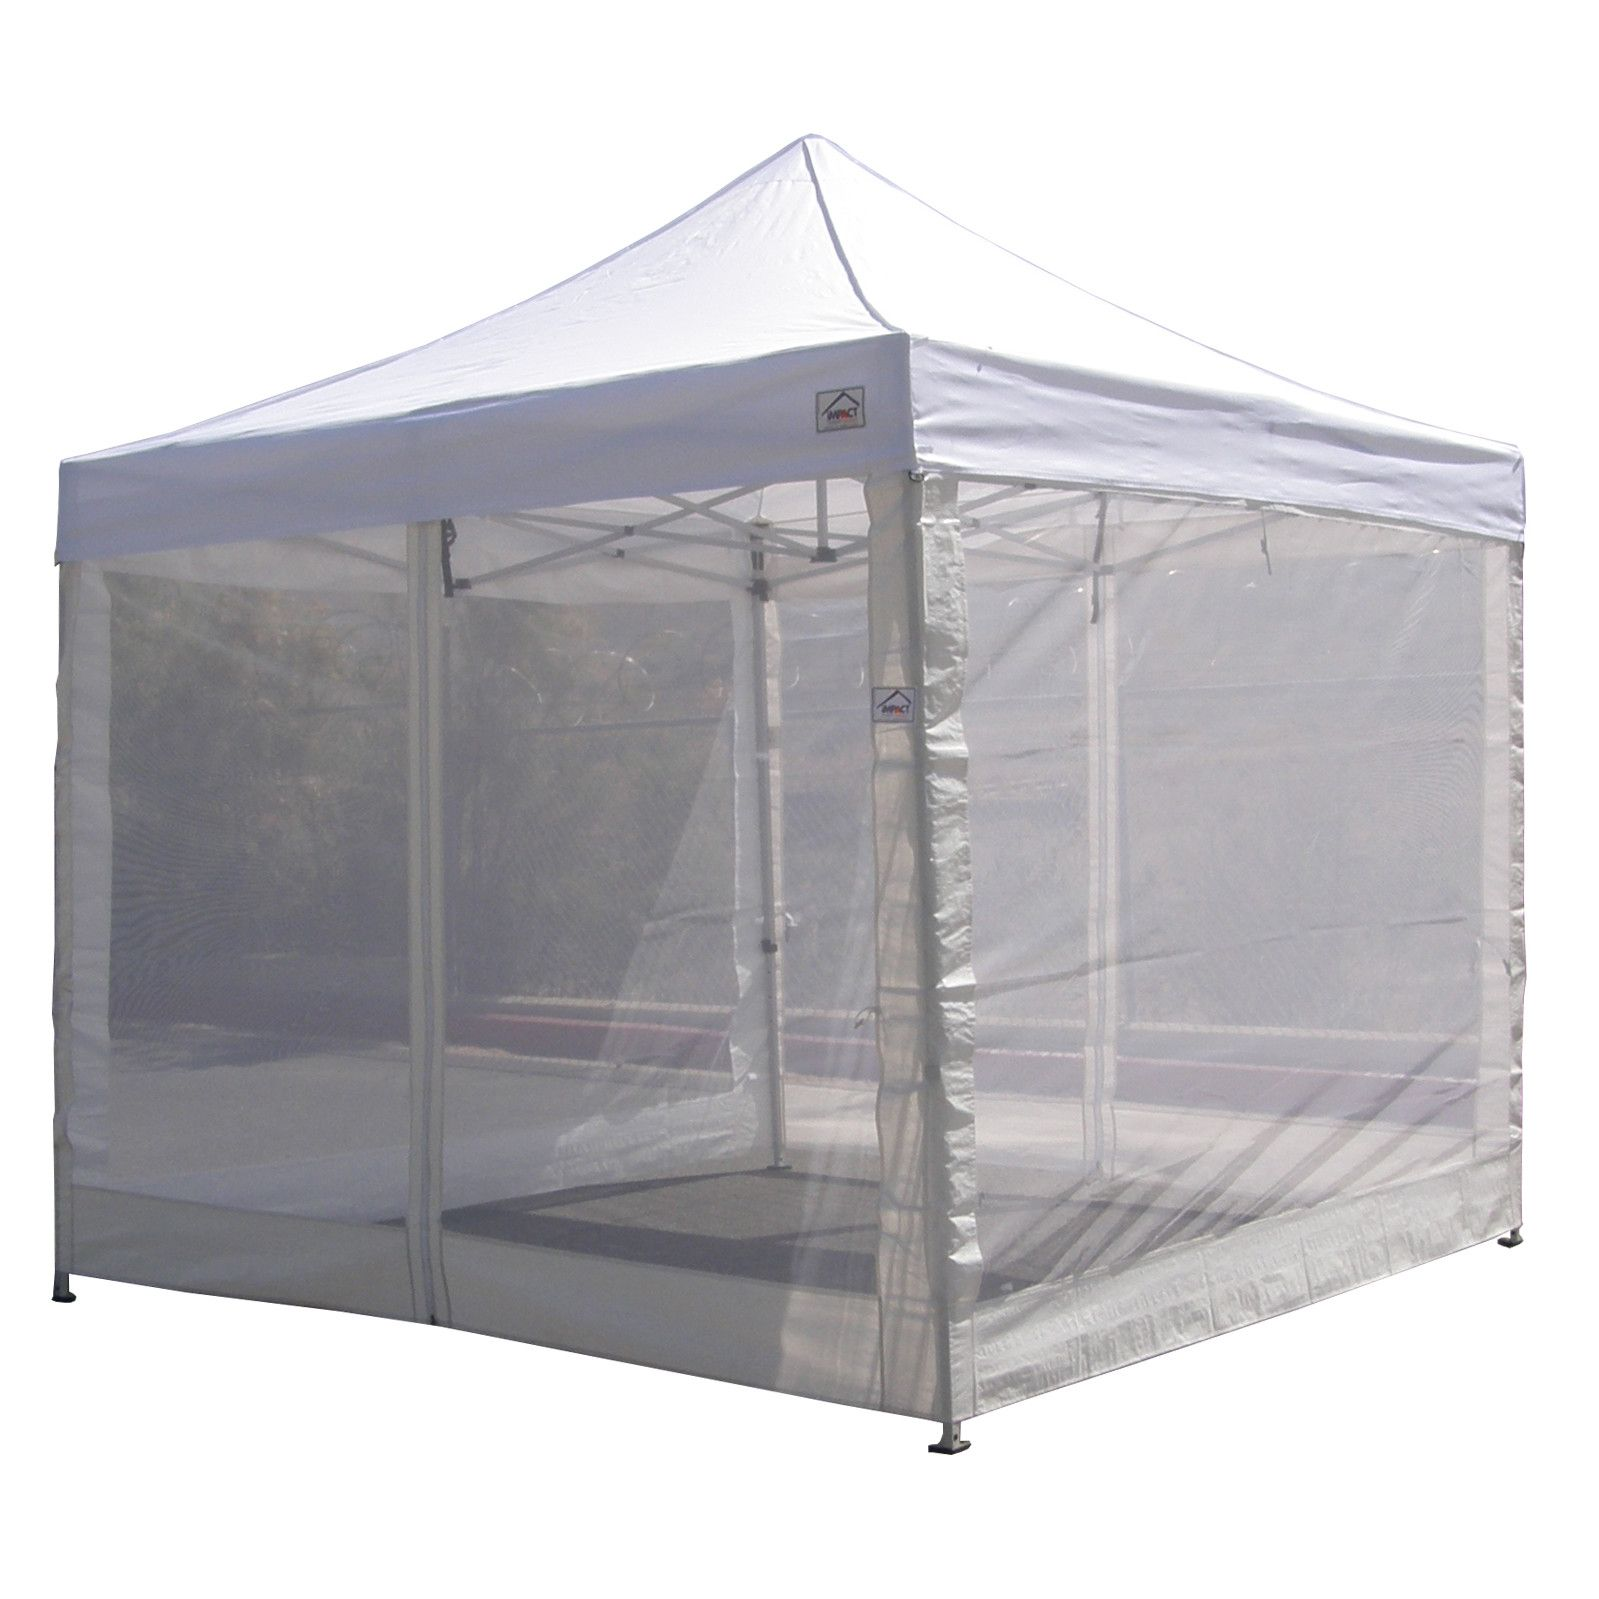 10 X10 Pop Up Mesh Mosquito Net Sidewalls Pop Up Canopy Tent Canopy Tent Pop Up Tent